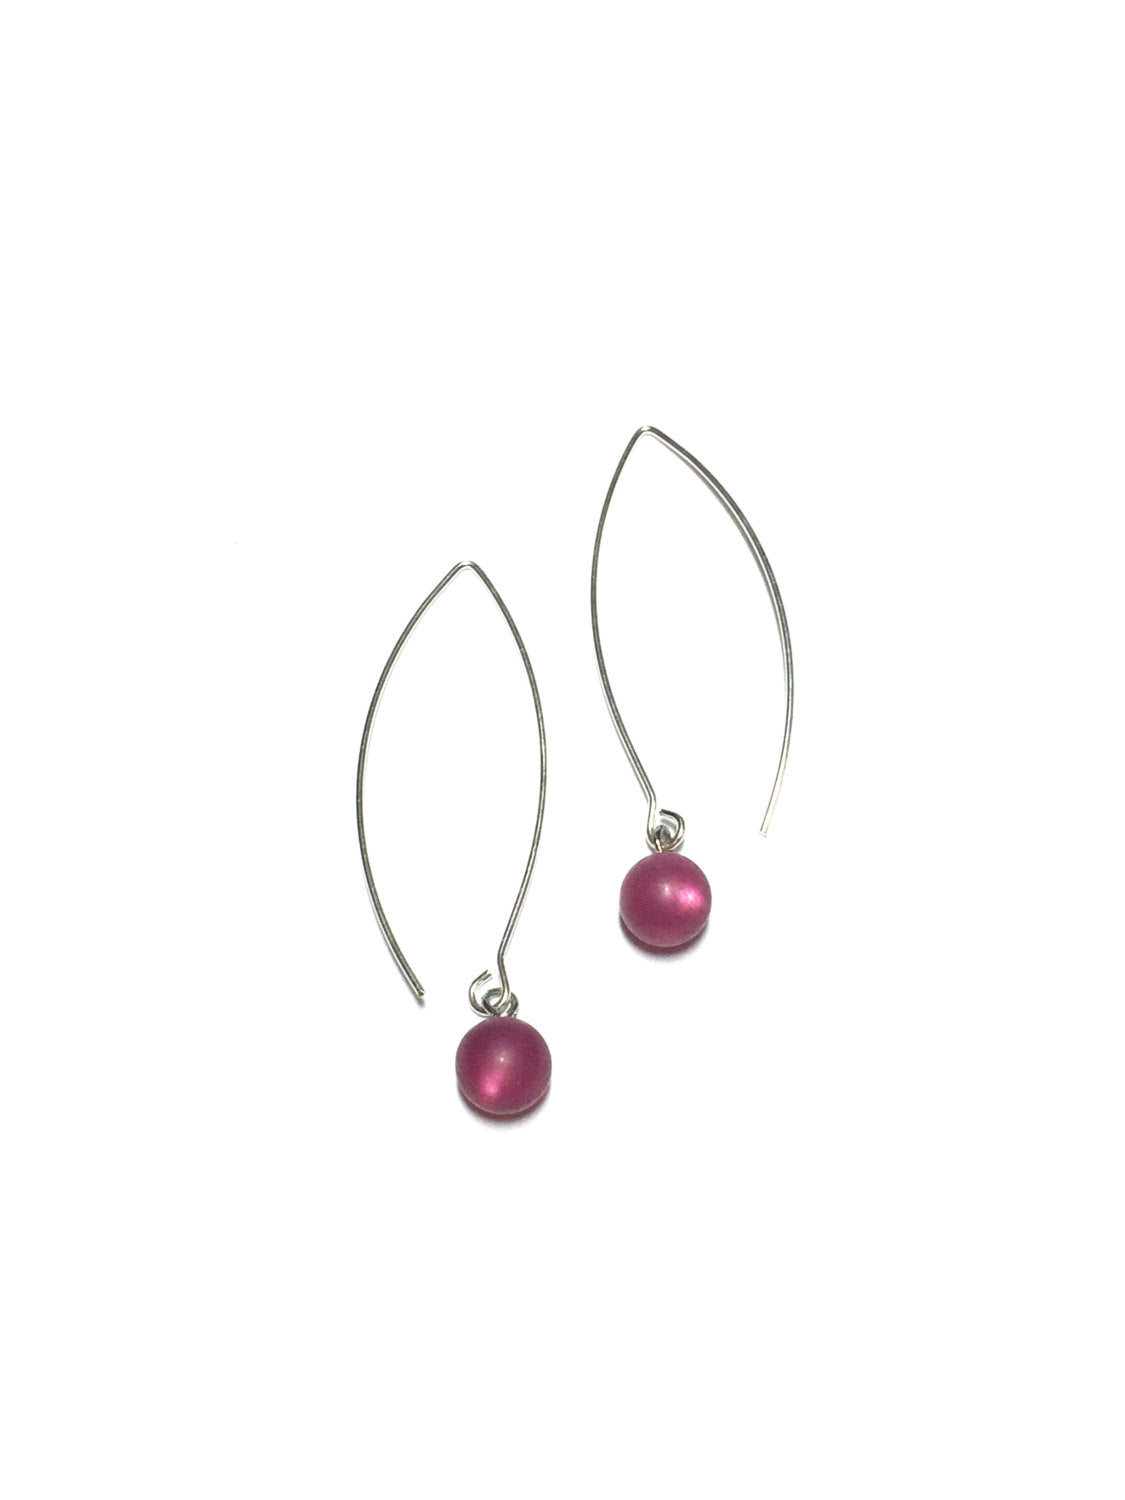 merlot raindrop earrings